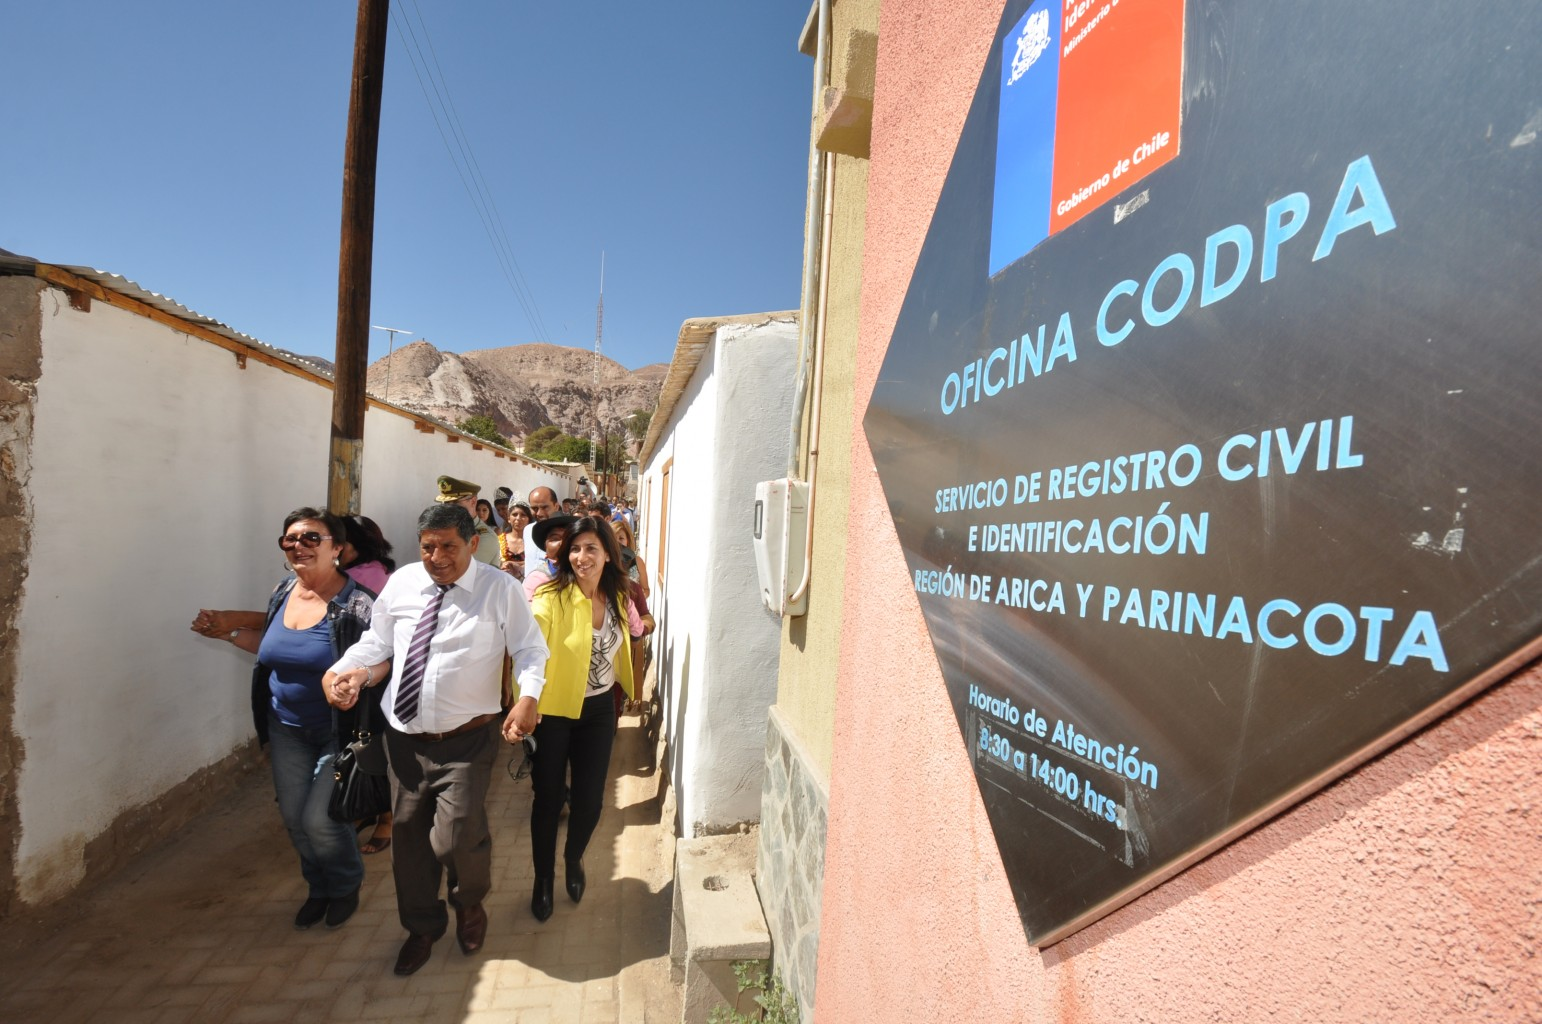 codpa oficina registro civil.JPG